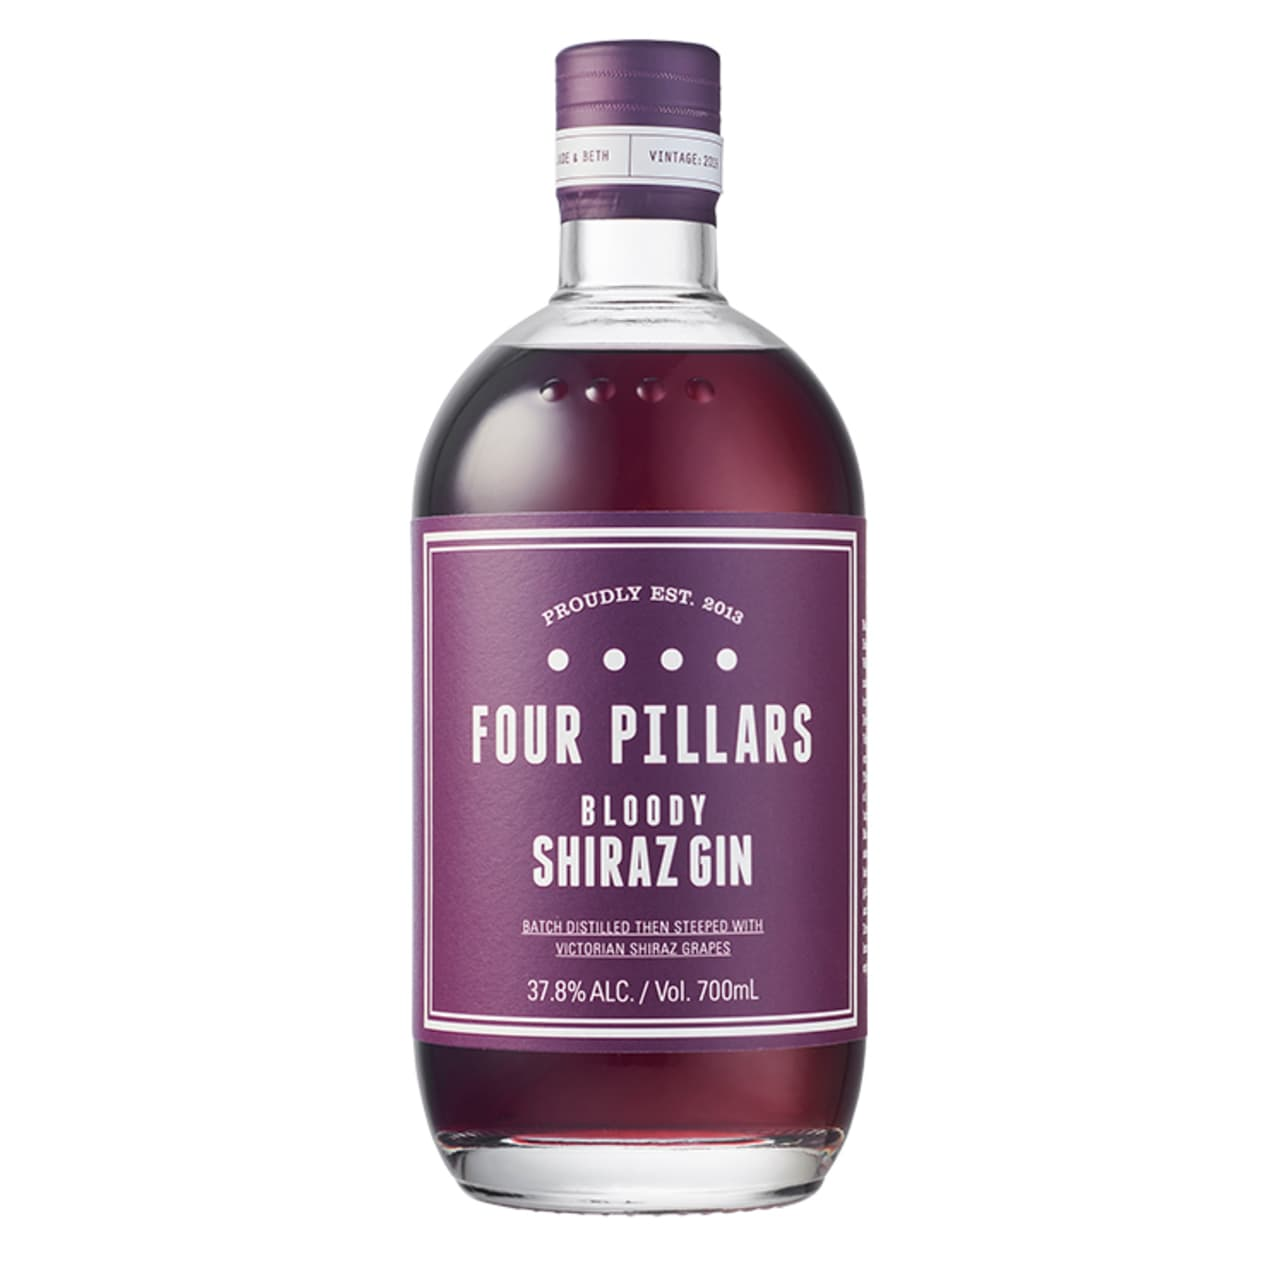 Product Image - Four Pillars Bloody Shiraz Gin 2018